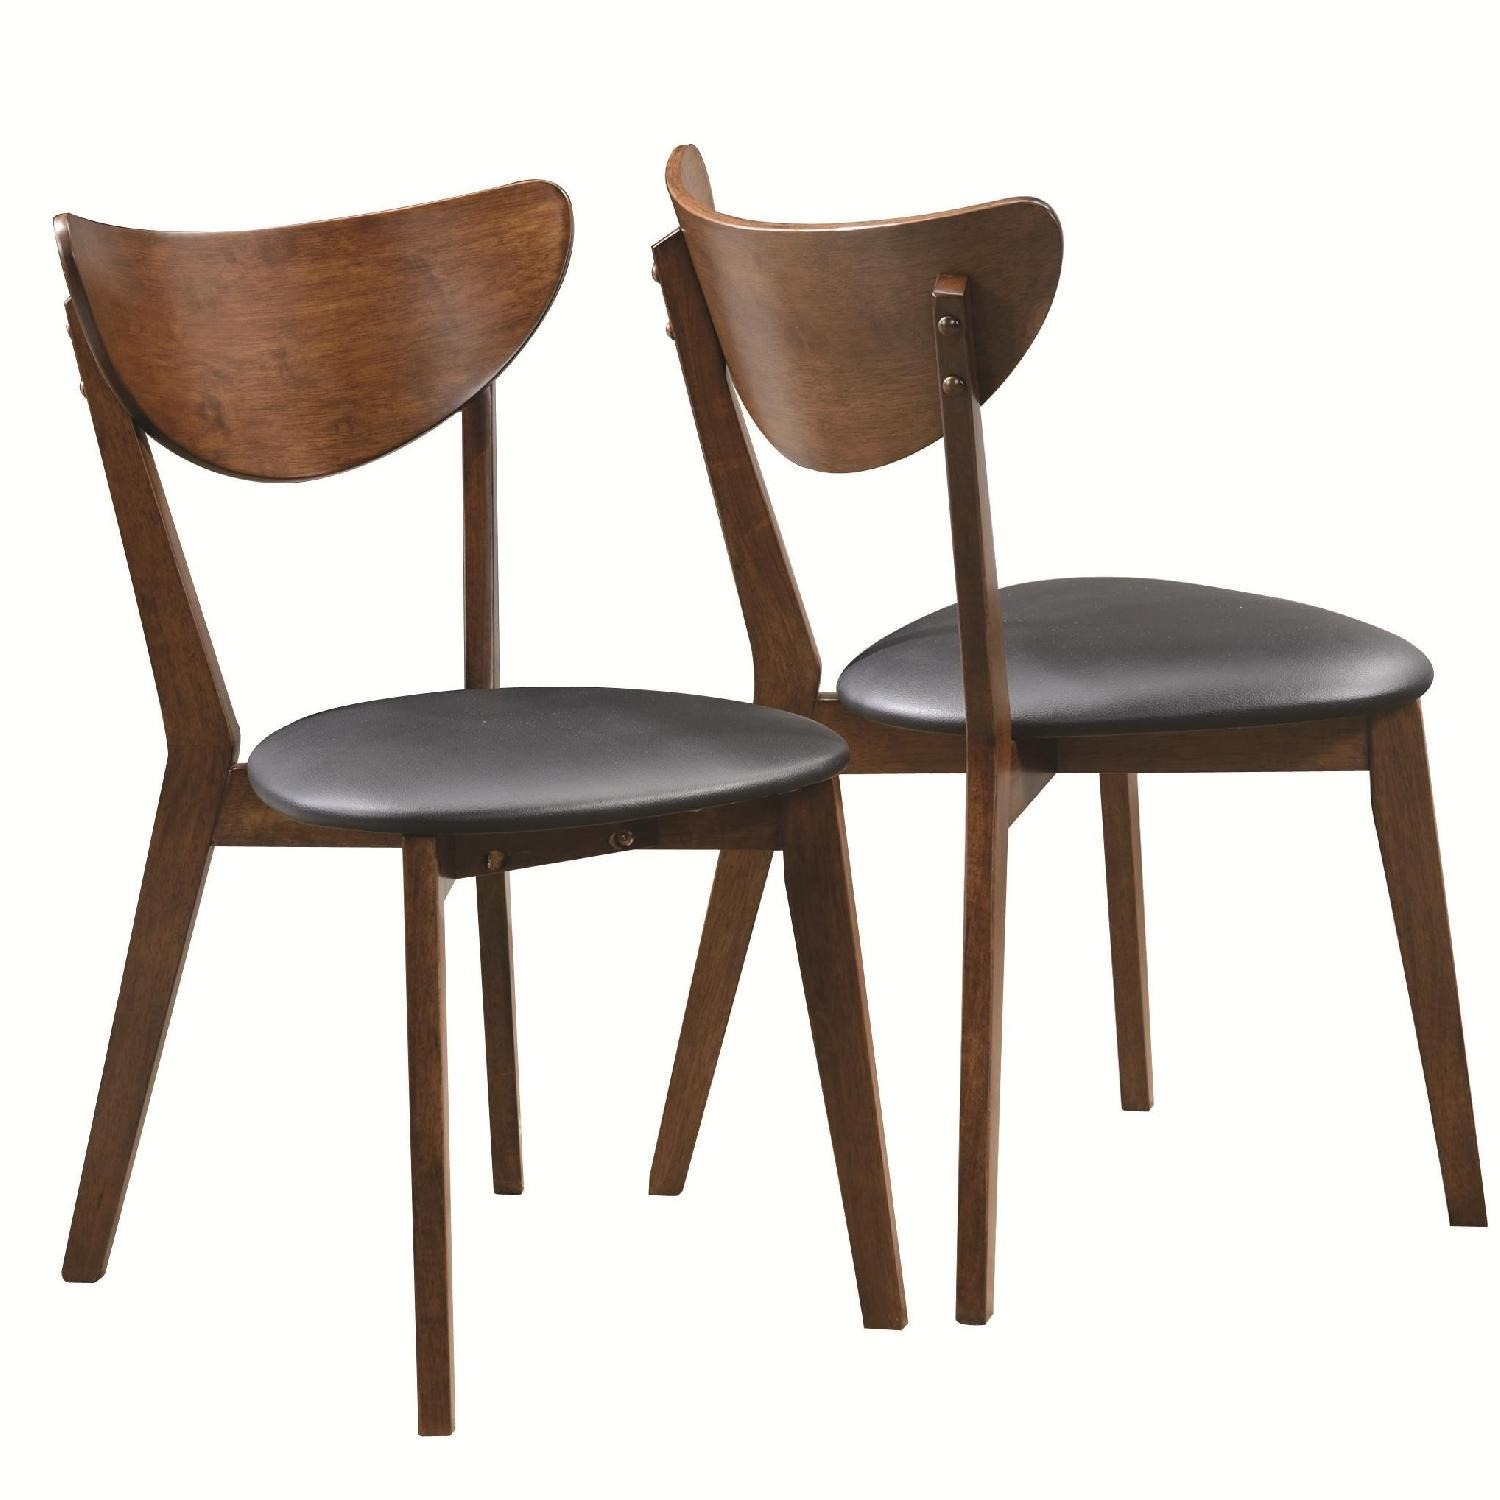 Mid-Century Retro  Dining Chairs in Walnut Finish - image-1